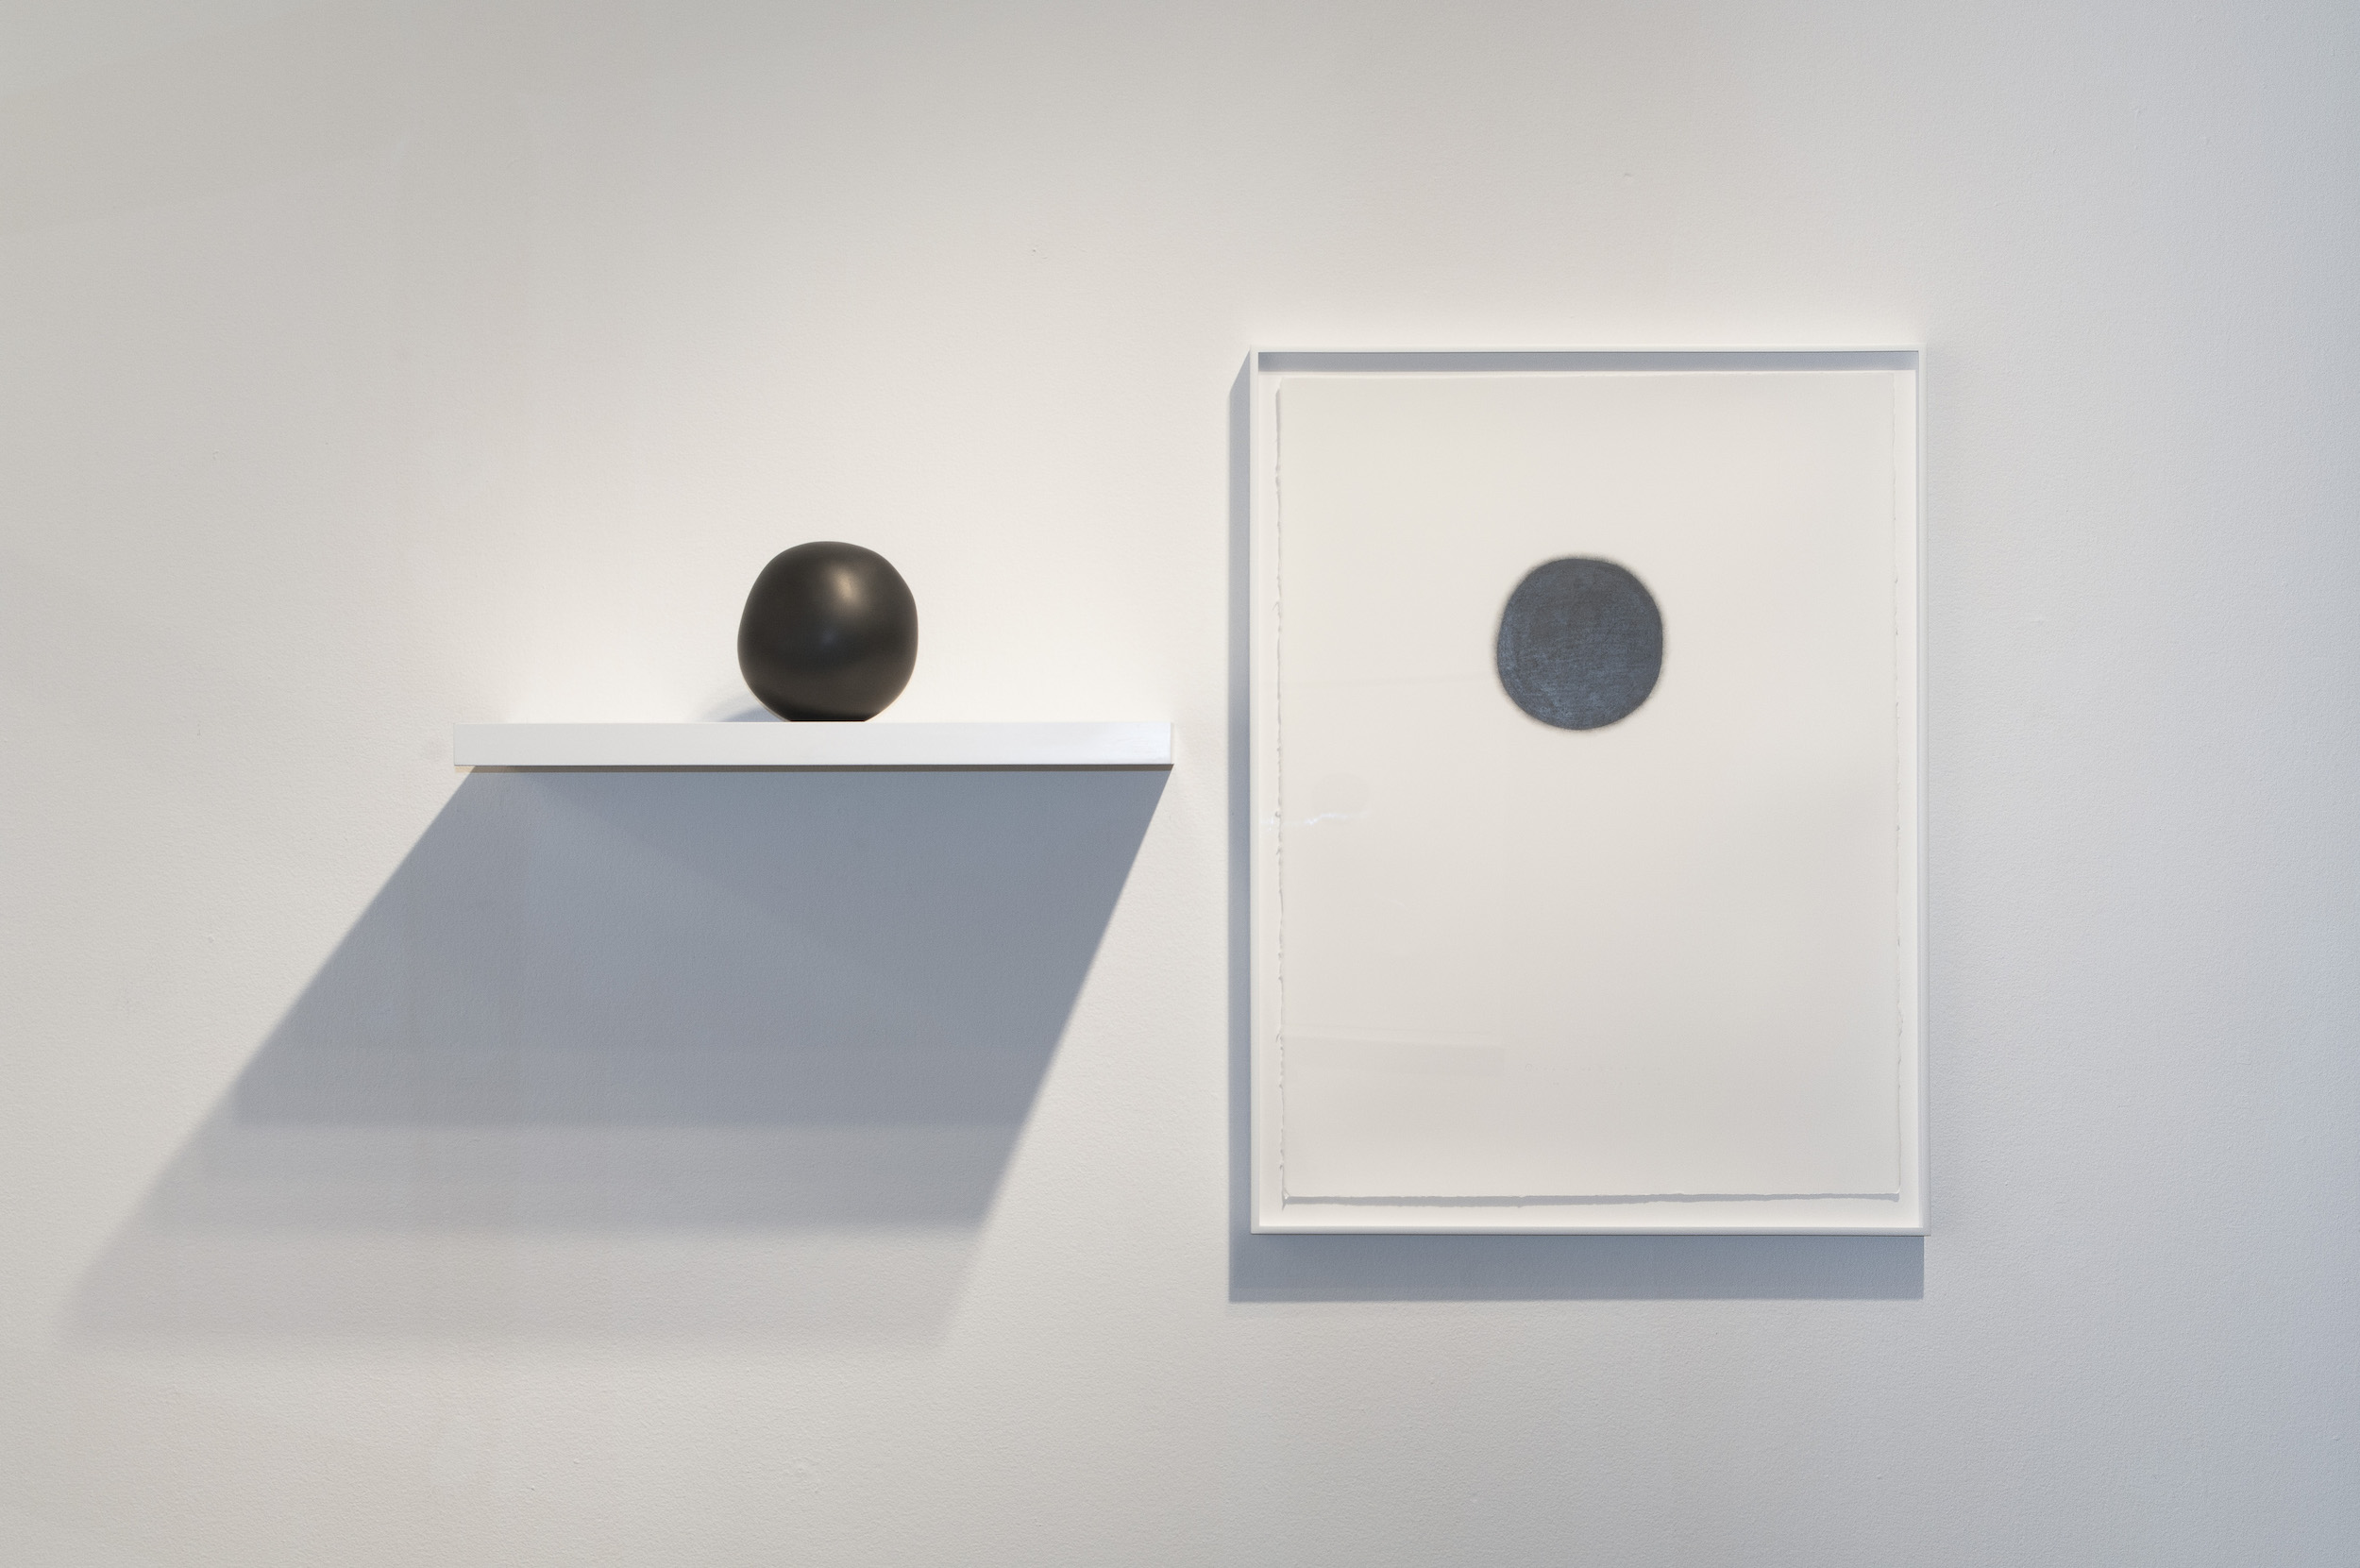 """Daily Practice: Circle Drawings, Day 26, Ucross, 2010  30"""" x 22"""" (paper size), Graphite pencil on paper  Sphere, no. 26, 2010, 5"""" x 4"""" x 4.25"""", Solid graphite"""